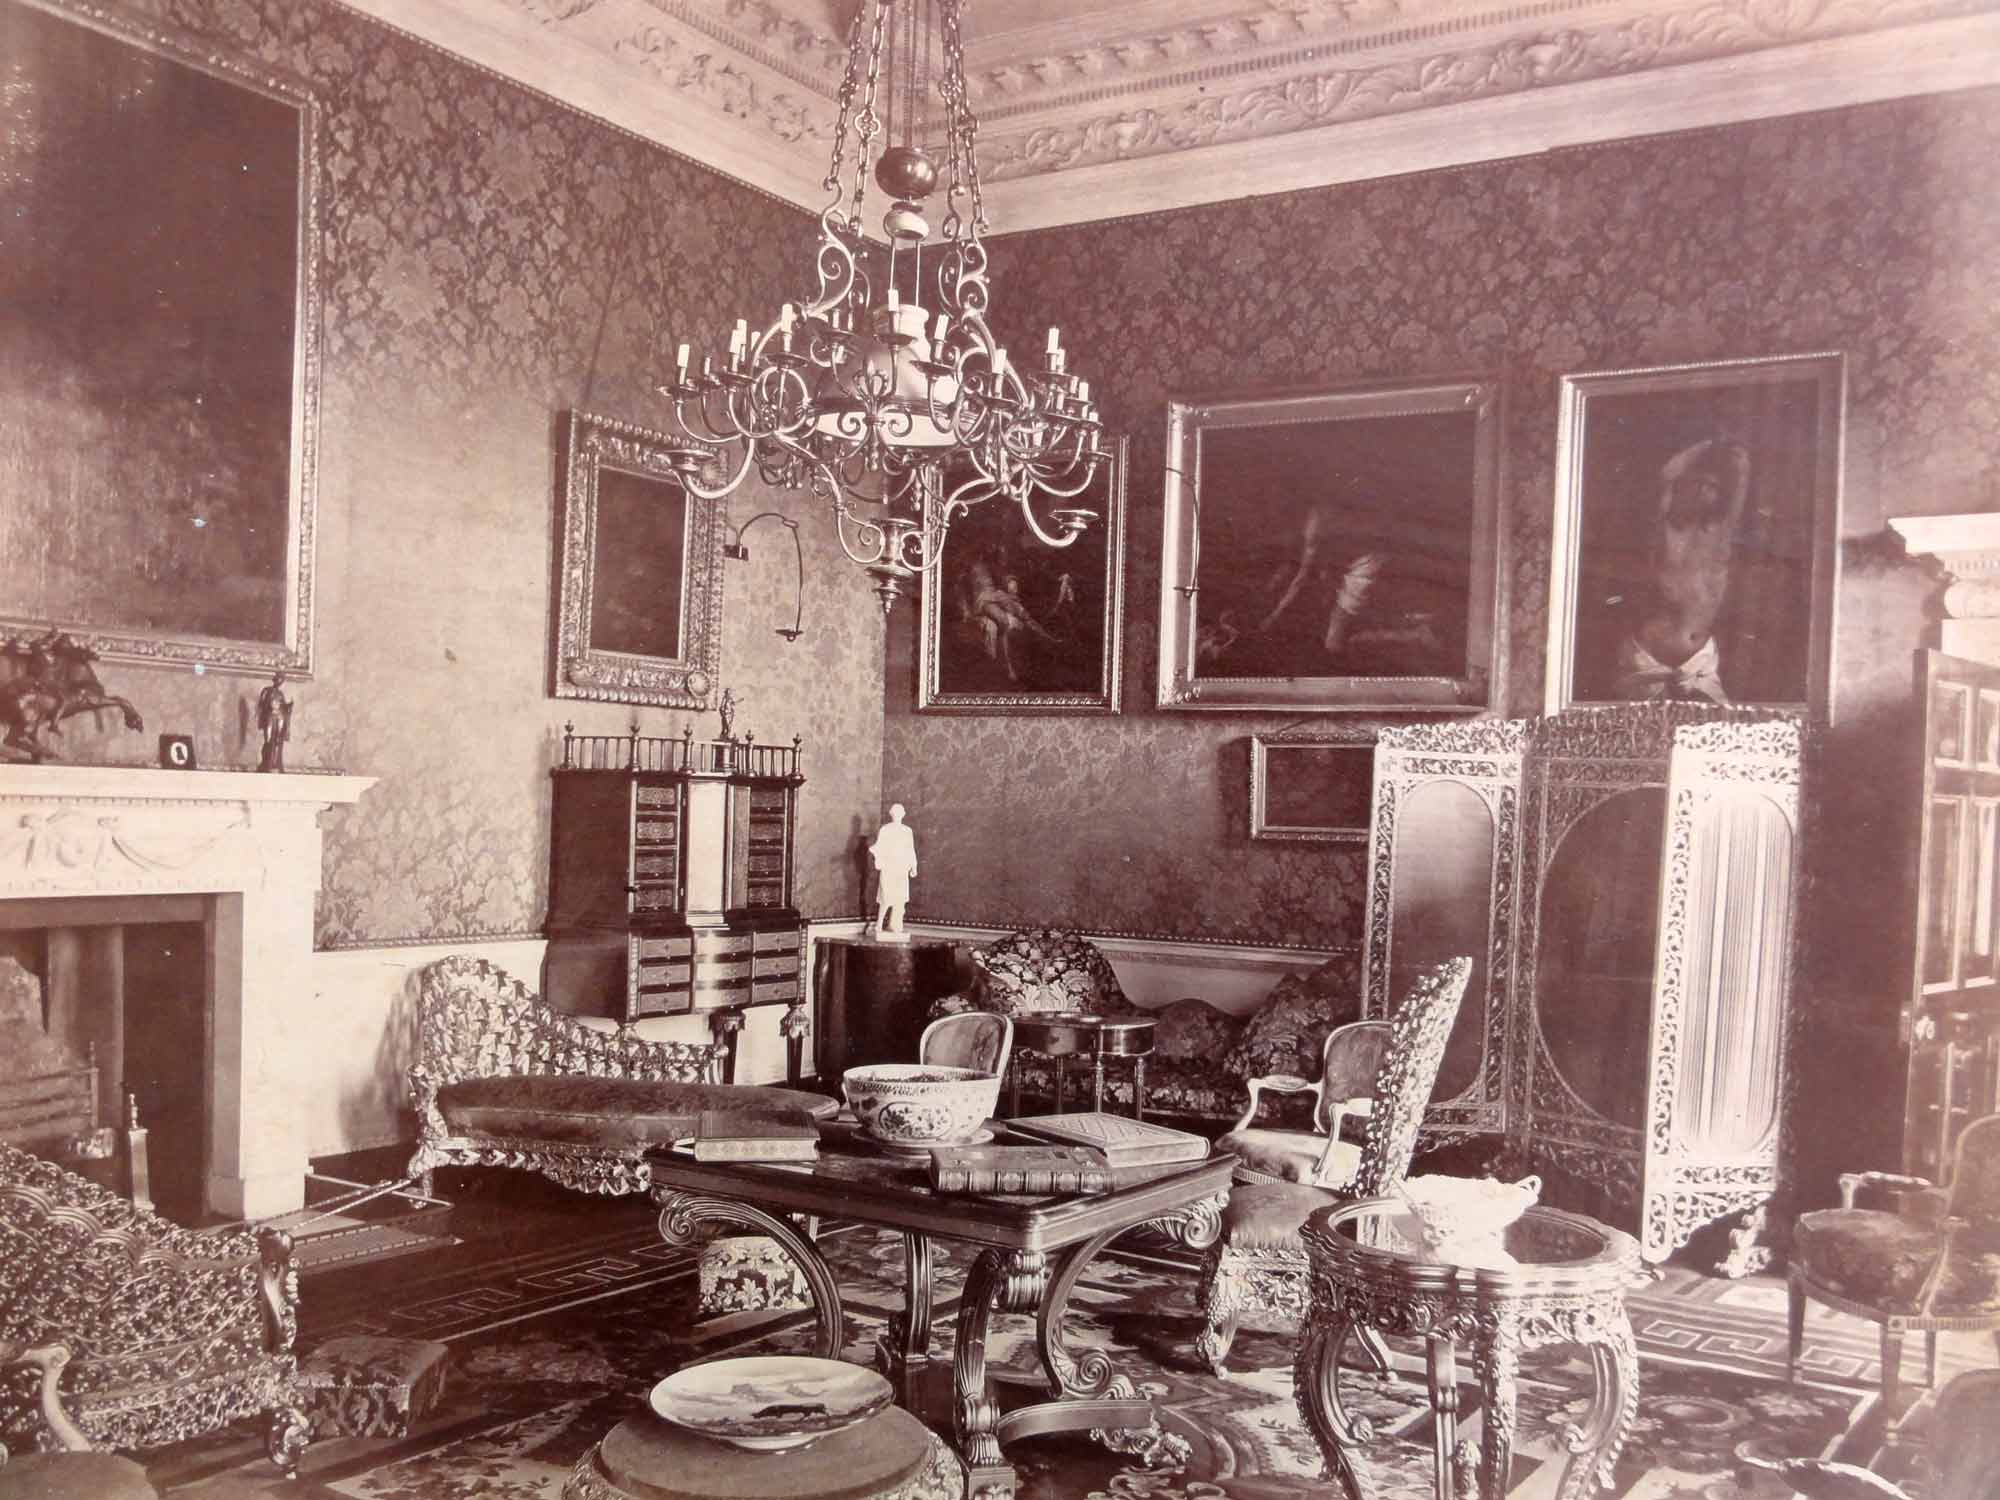 Photograph of the Crimson Drawing Room c. 1880 by Henry Shaw